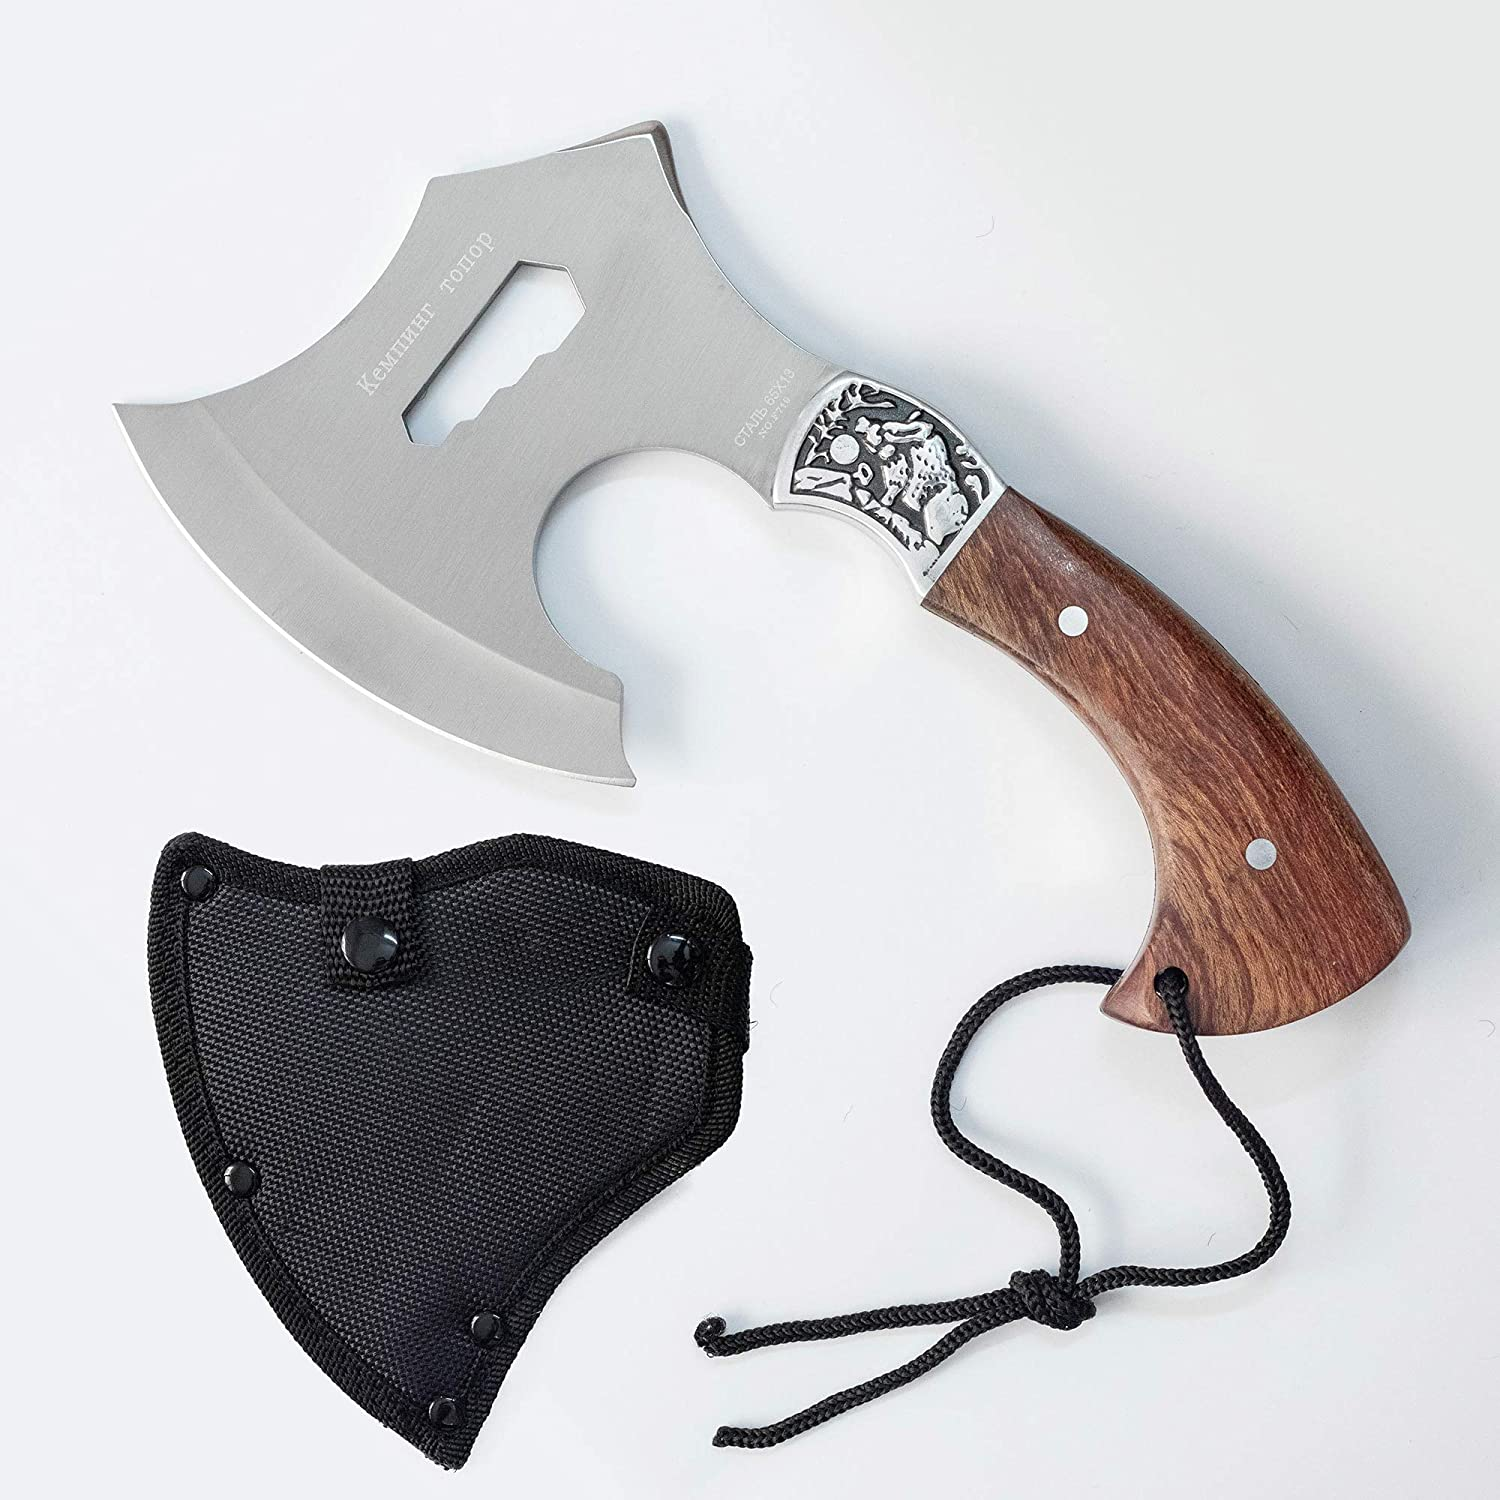 SUPCAMP Throwing Axe, Camping Axe with Sheath, Fixed Blade Full Tang Survival Hatchet with Nylon Sheath for Outdoor Camping, Hiking, Throwing, Tactical and Military Training